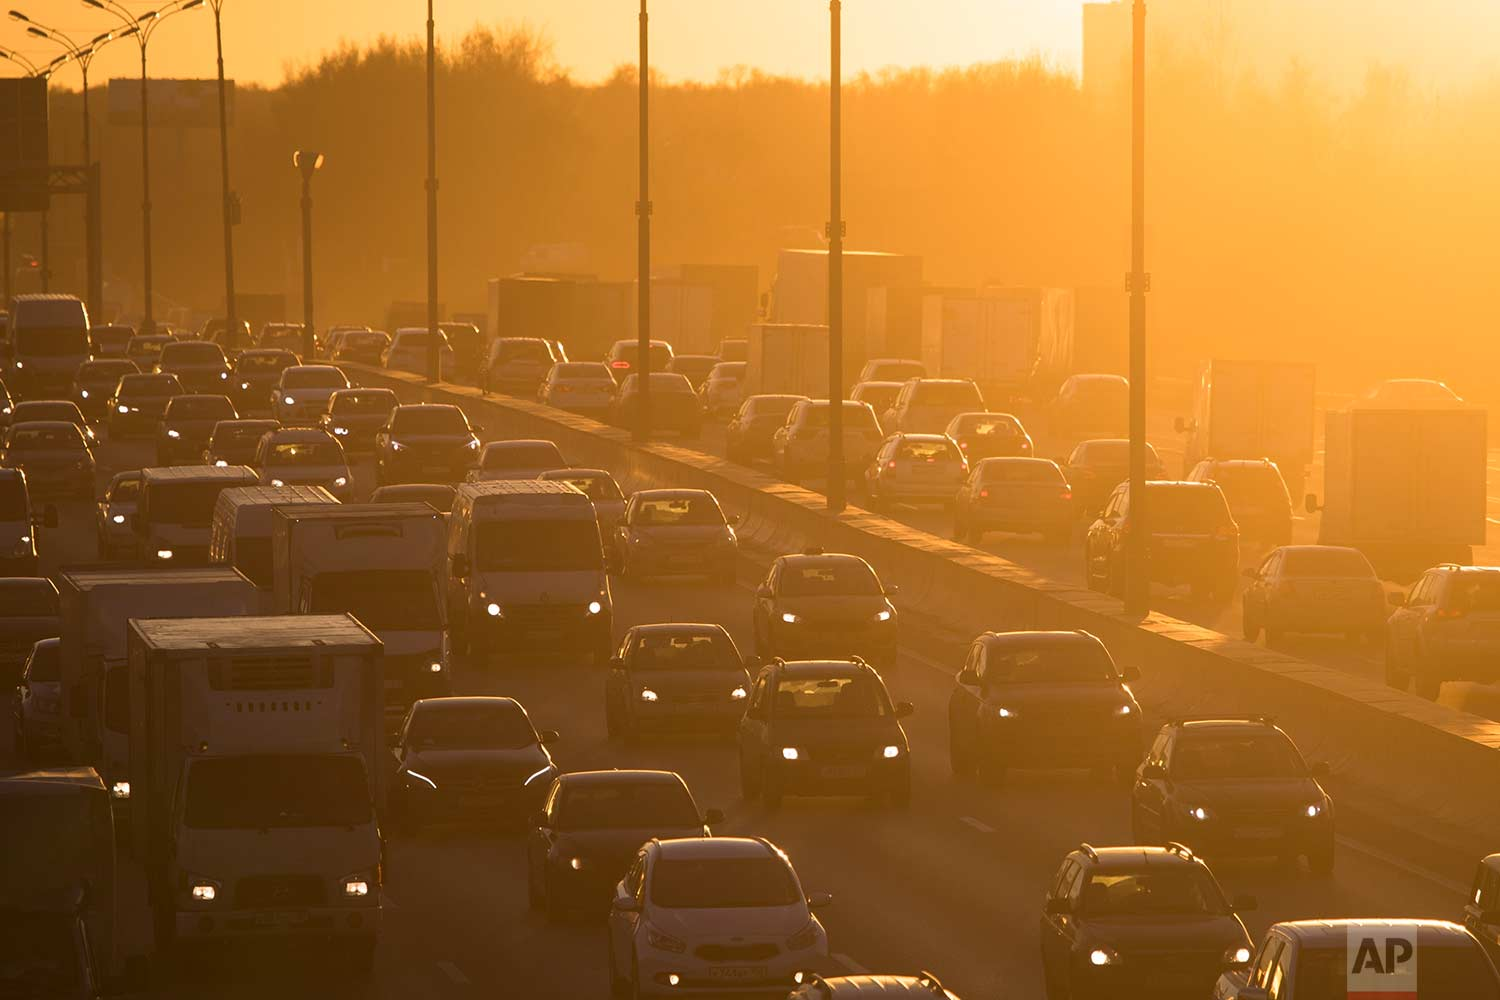 Cars stuck in traffic travel on a road in Moscow, Russia during sunset on Wednesday, Nov. 8, 2017. (AP Photo/Pavel Golovkin)